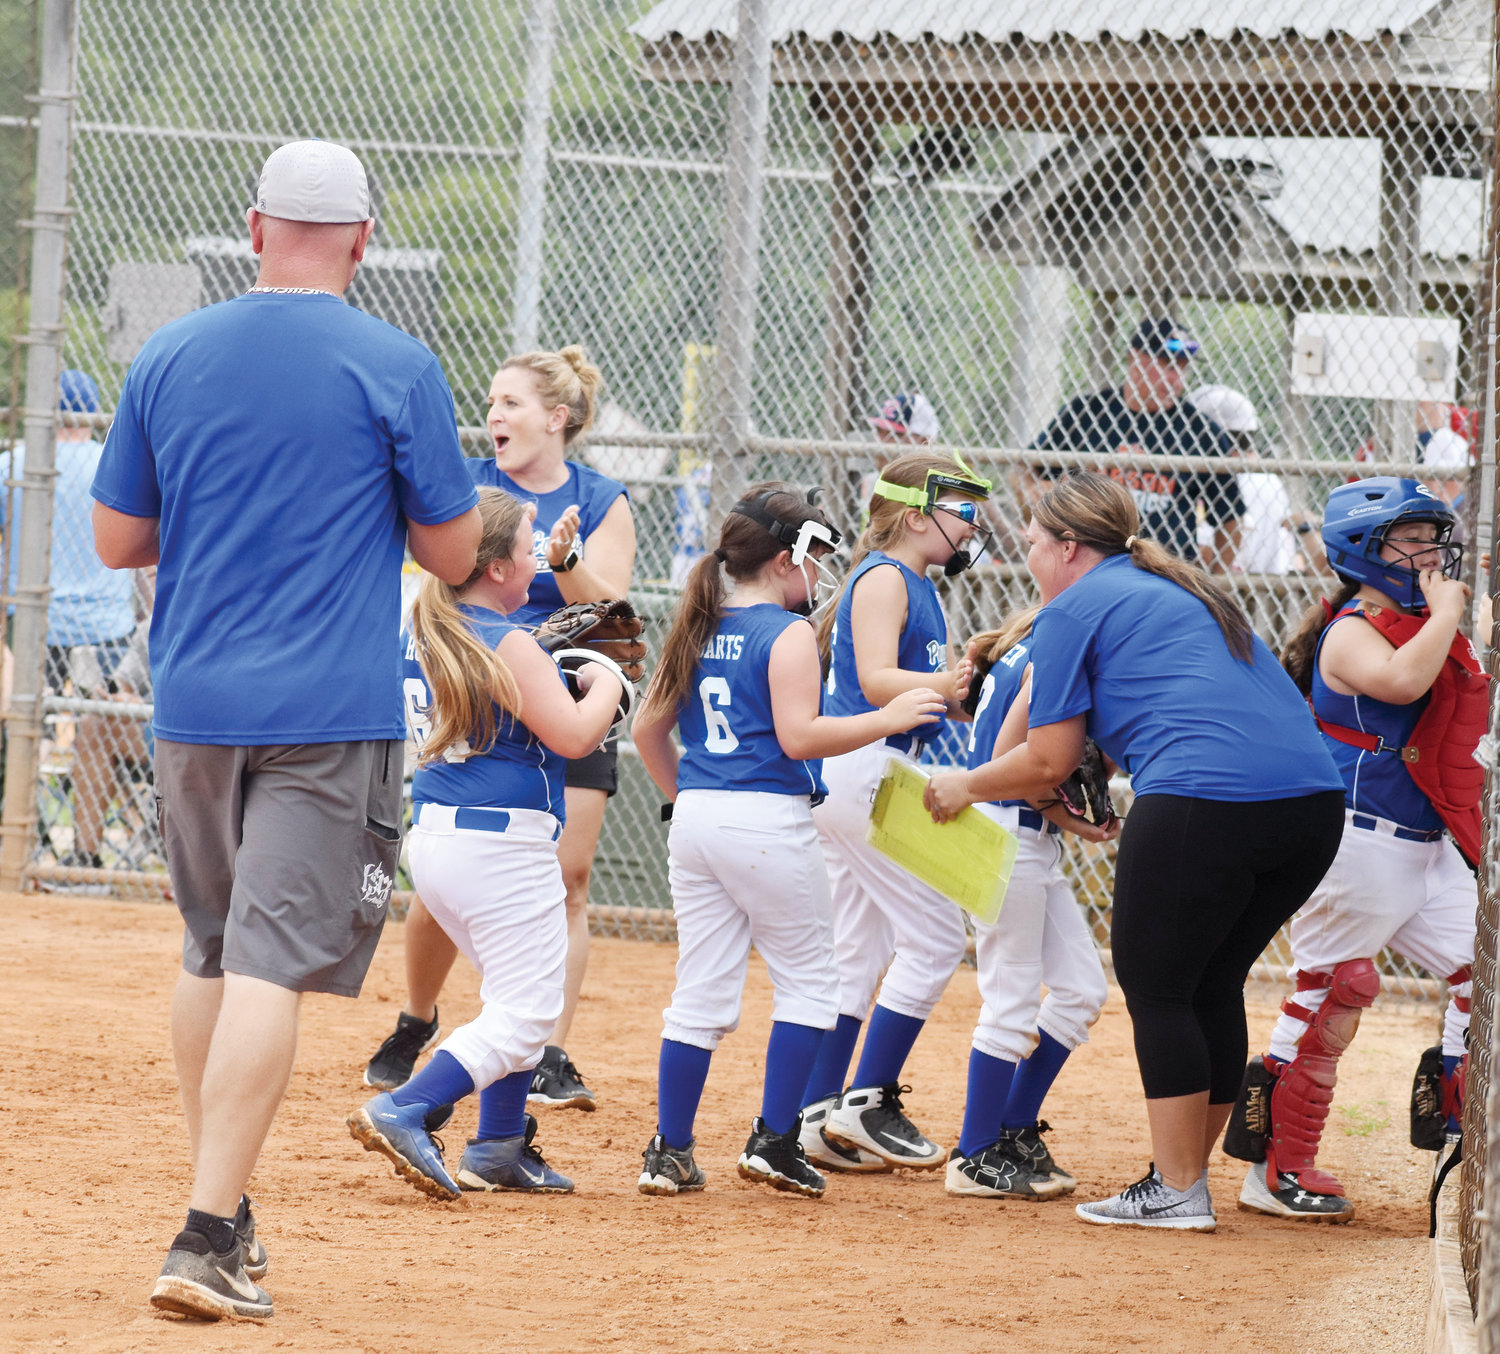 Kelly Snow | The Courier-Times.The Person County 8U All-Star softball team celebrates after defeating Lake Norman, 15-11, last Saturday in the North Carolina Little League State Tournament. The All-Stars will play today in the state semifinals.